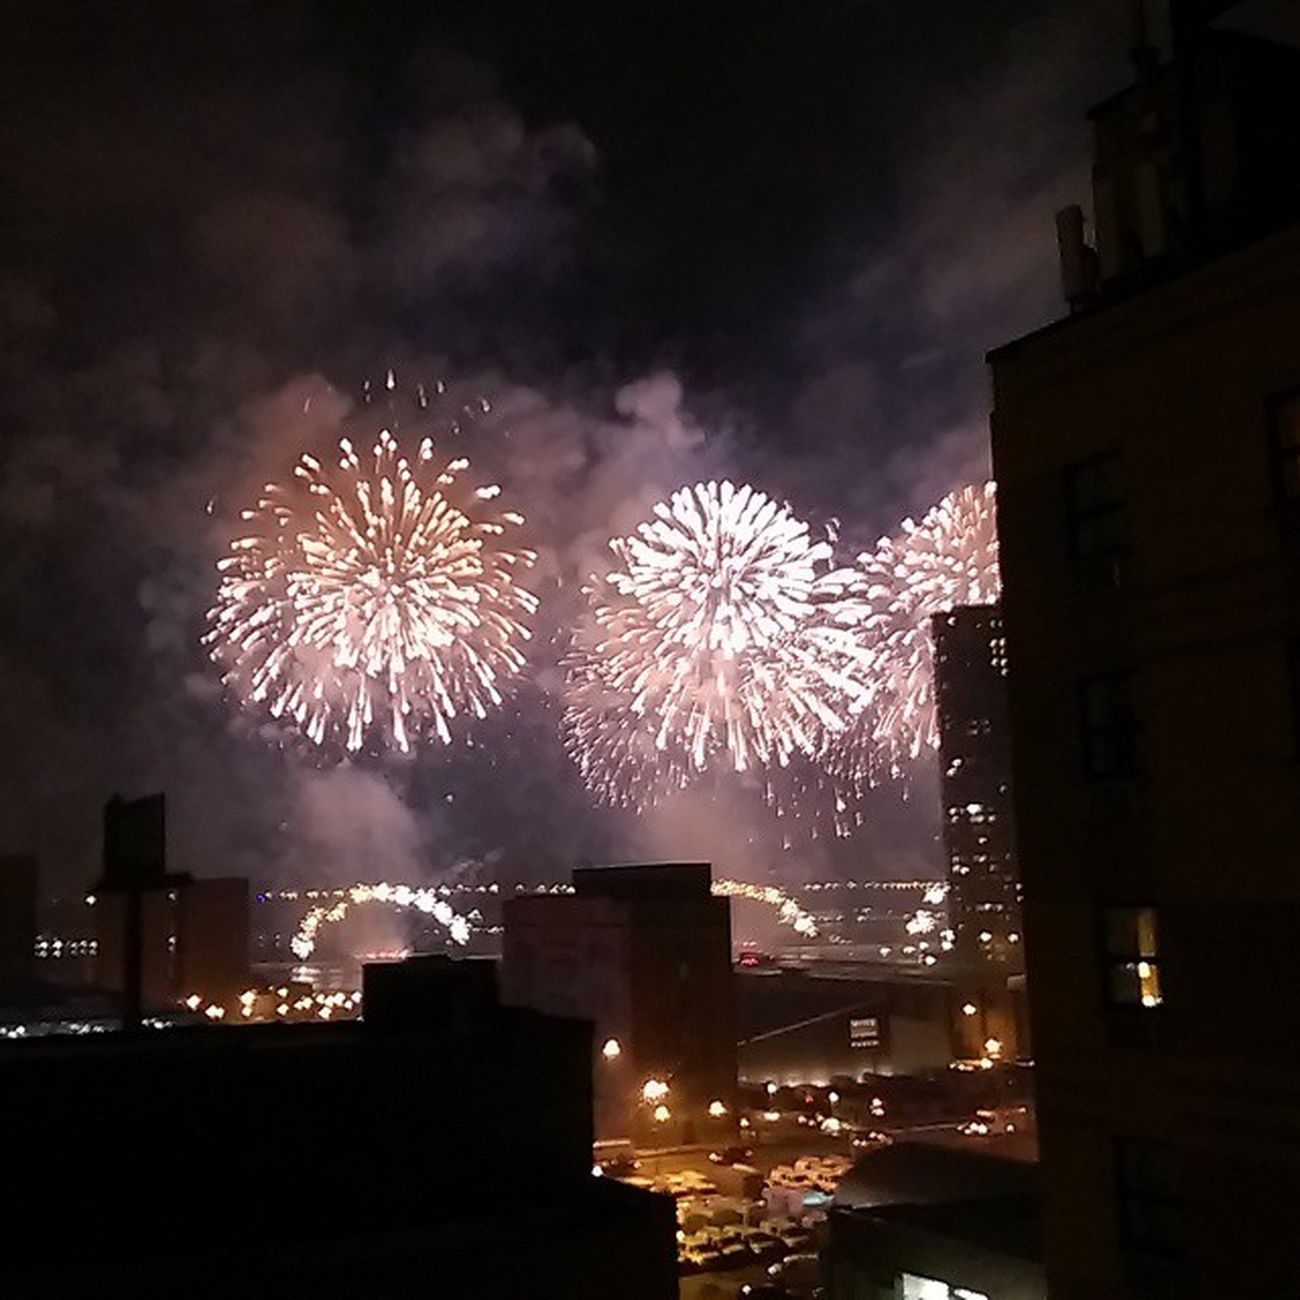 Can anyone tell me why there were Fireworks over the Hudson in midtown just now?! (Feb 17th 7:30pm) ... Or was that NYC 's Randomactsofkindness move?!?! Lol!!! Woooowww!! I LOVE fireworks!! Iheartny emmacphotos